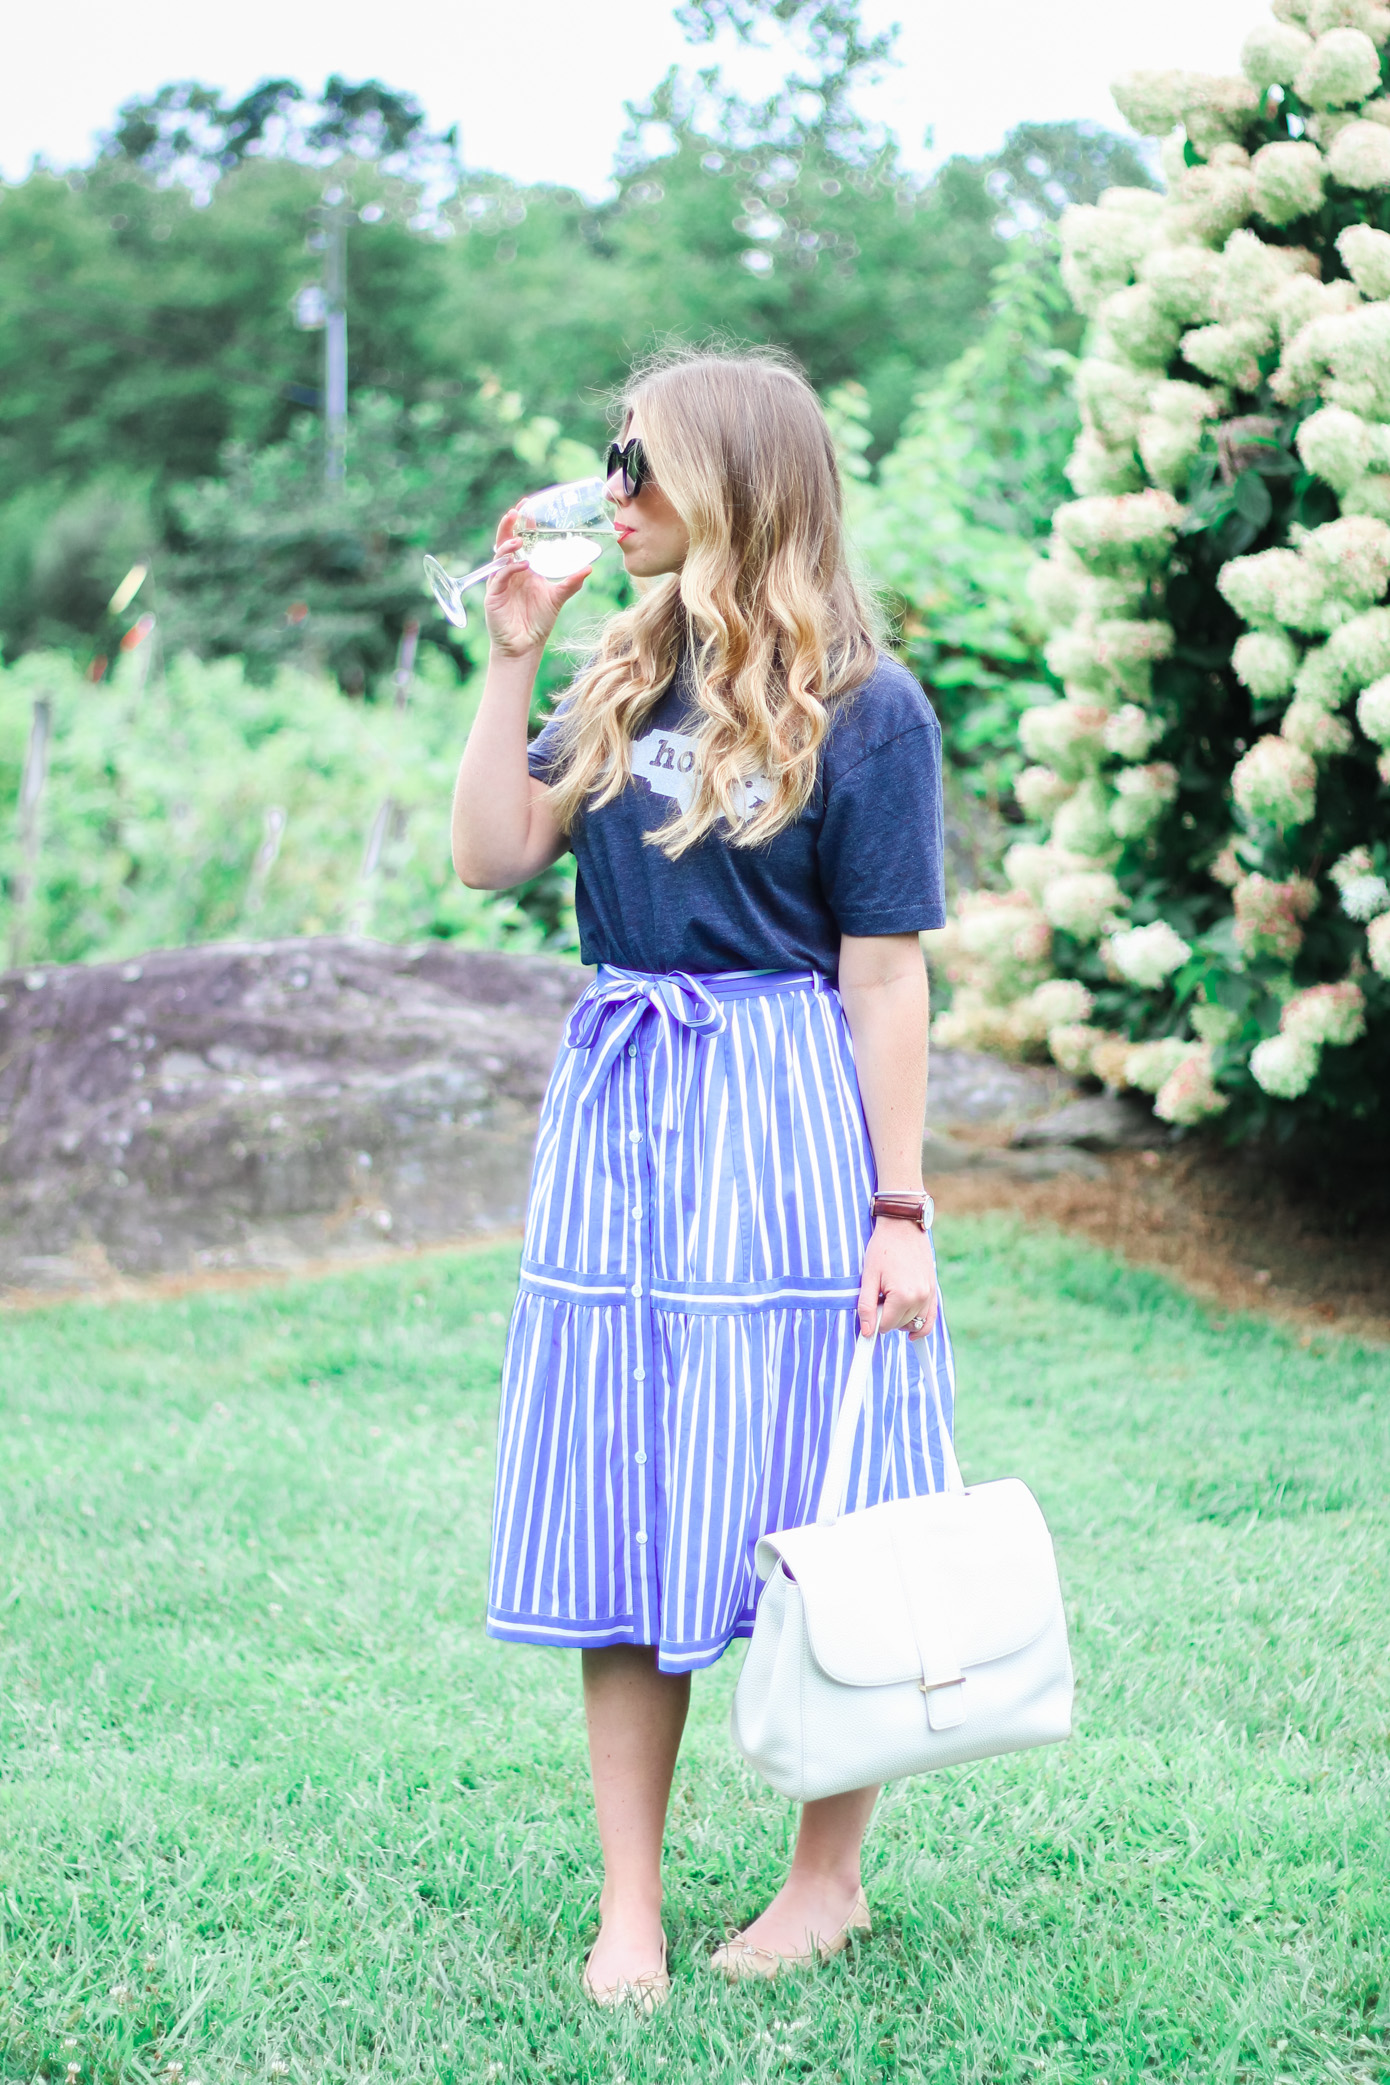 What to Wear to a Winery | Louella Reese Life & Style Blog